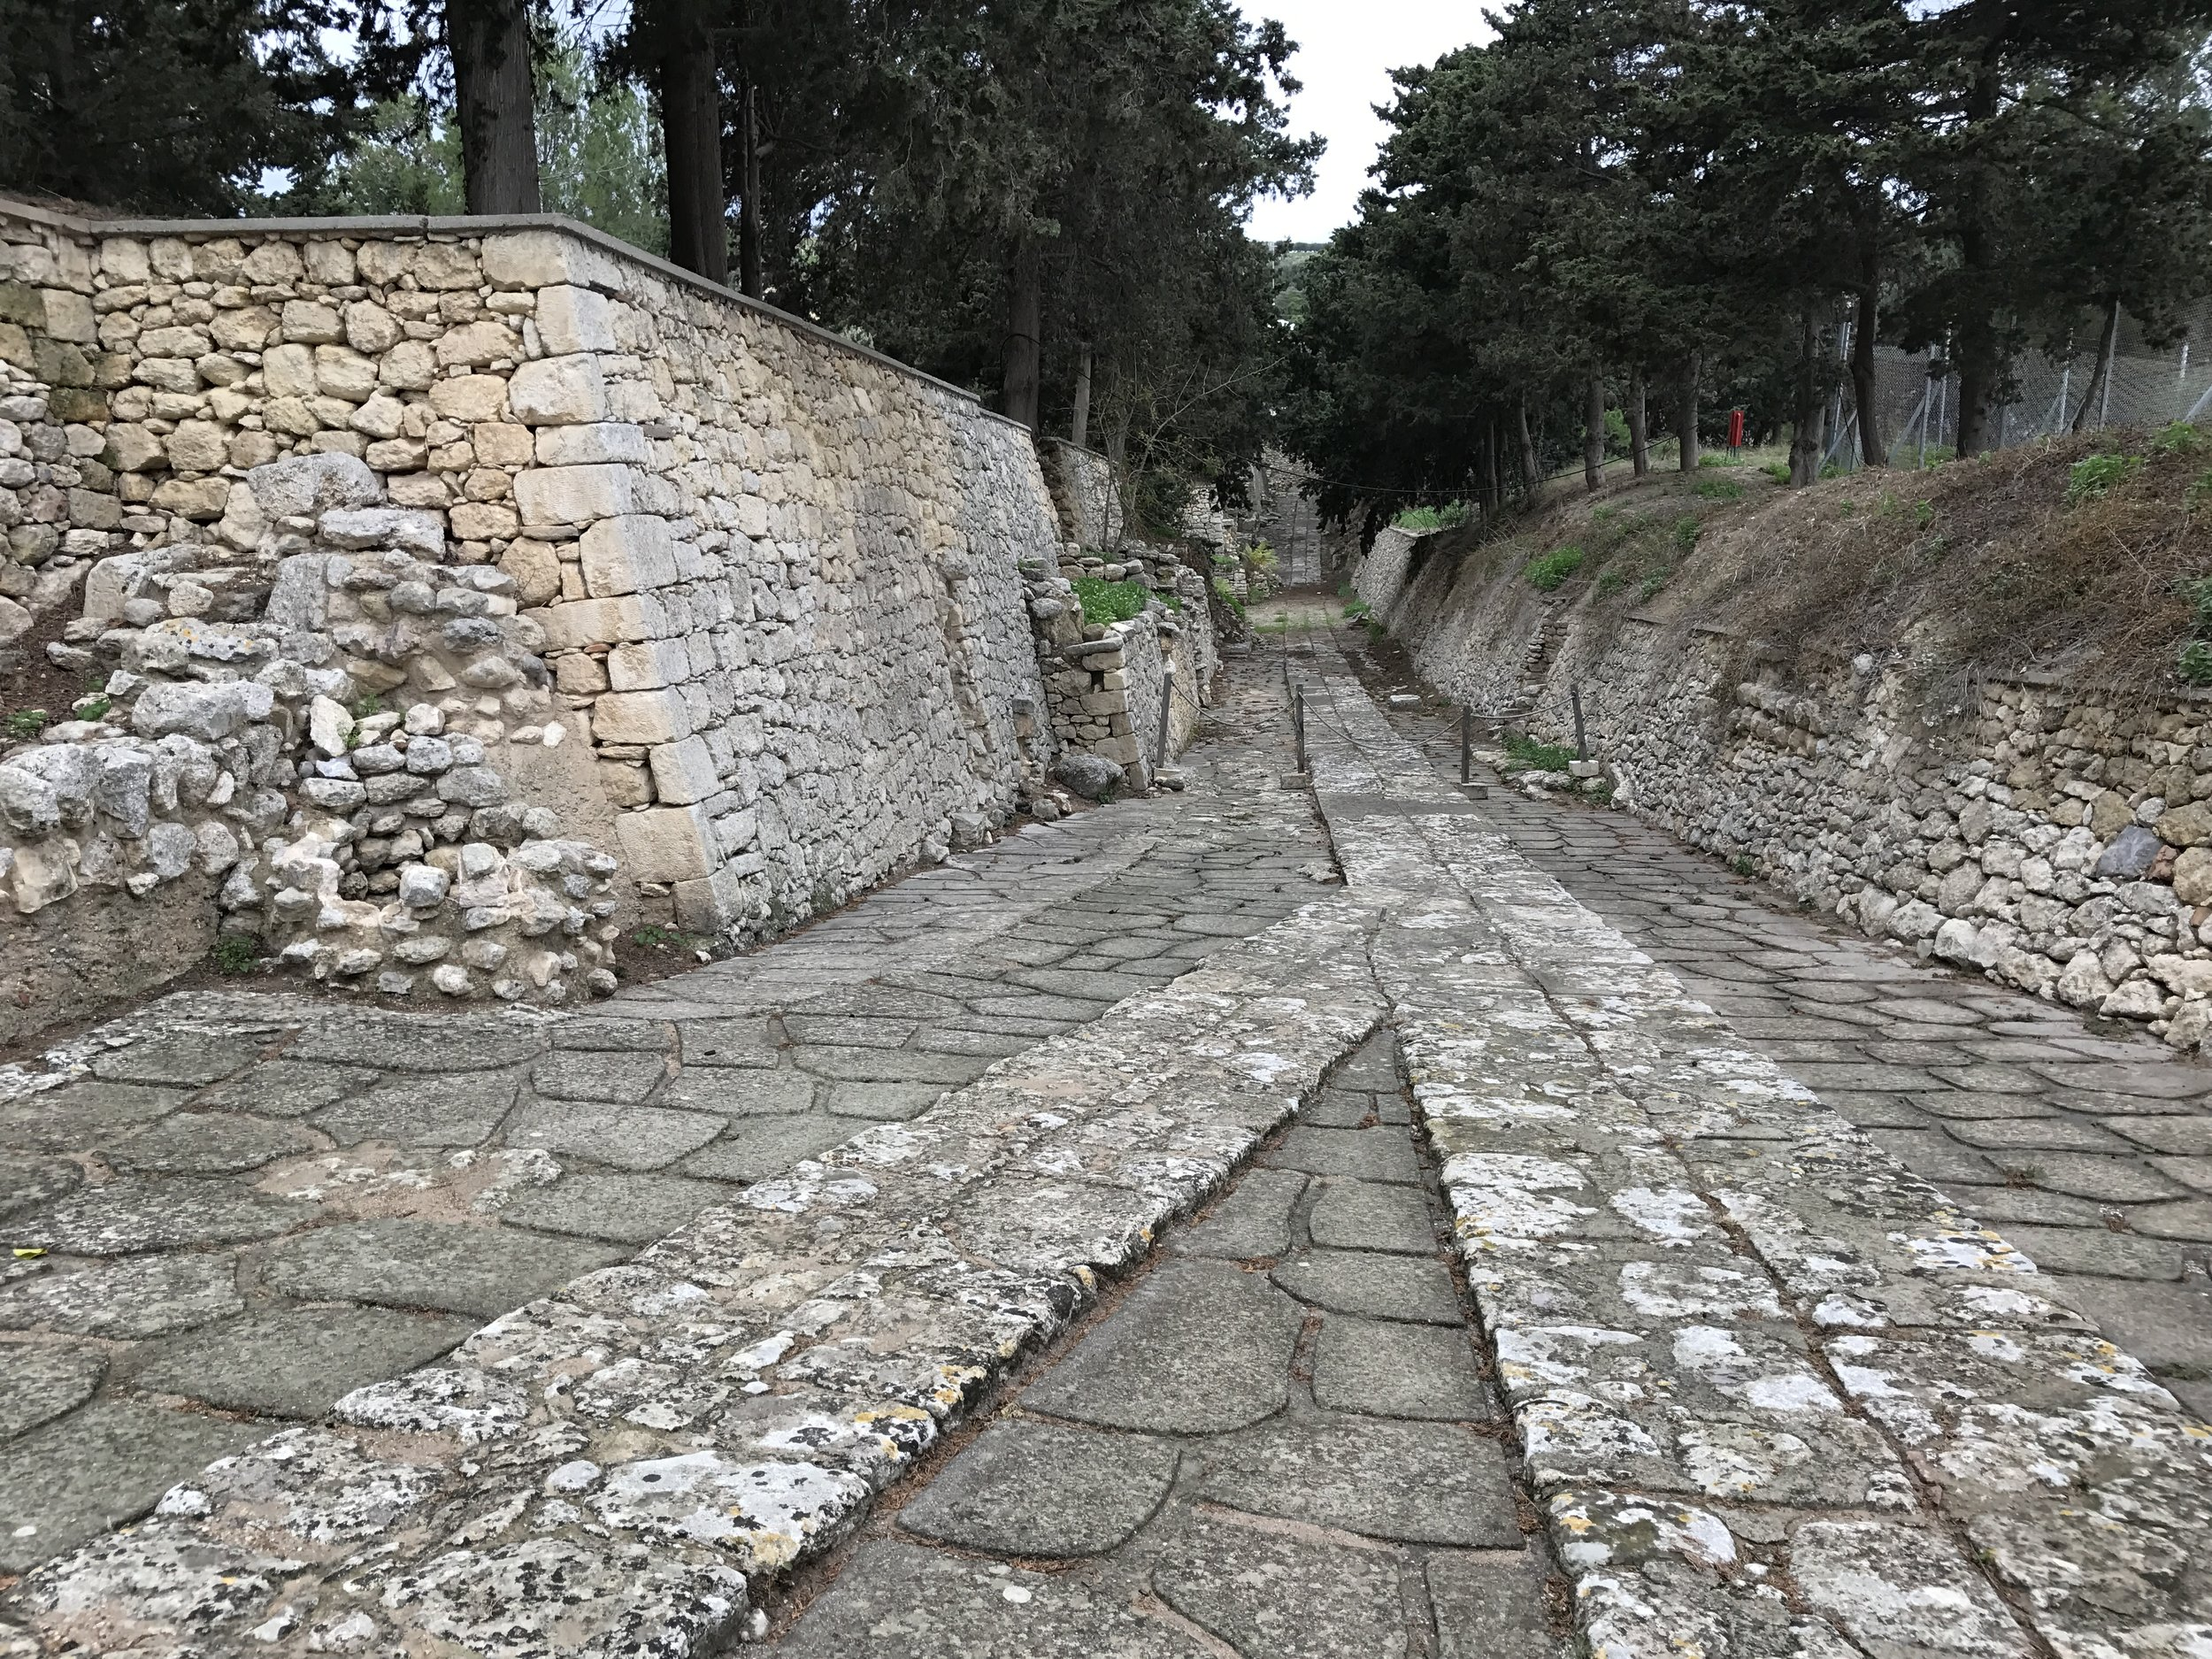 If I remember correctly, this is the road that led into the main entrance of Knossos. Thousands of people traveled here to conduct business.